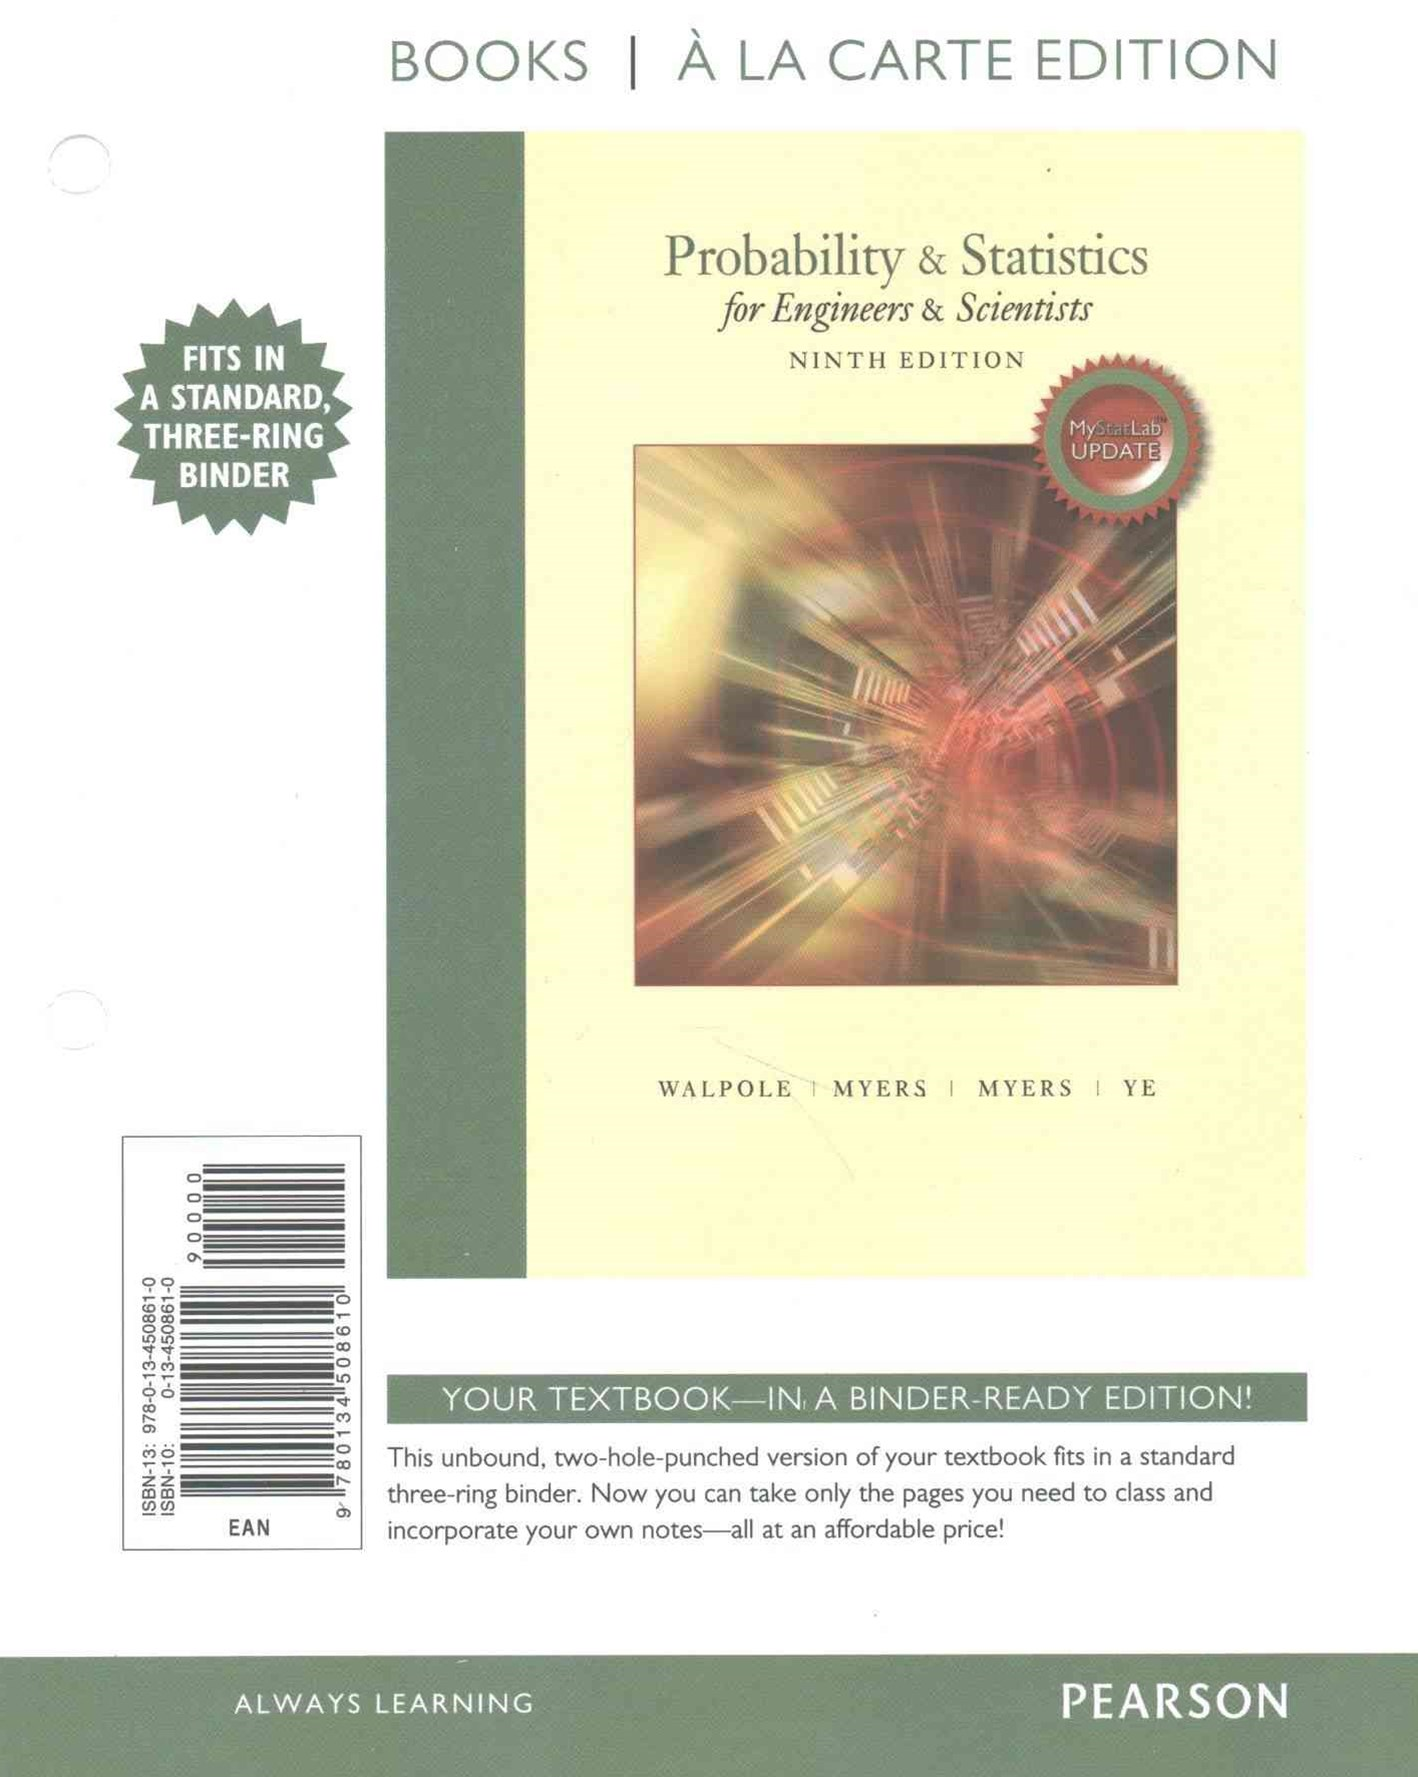 Probability and Statistics for Engineers and Scientists, MyStatLab Update, Books a la Carte Edition